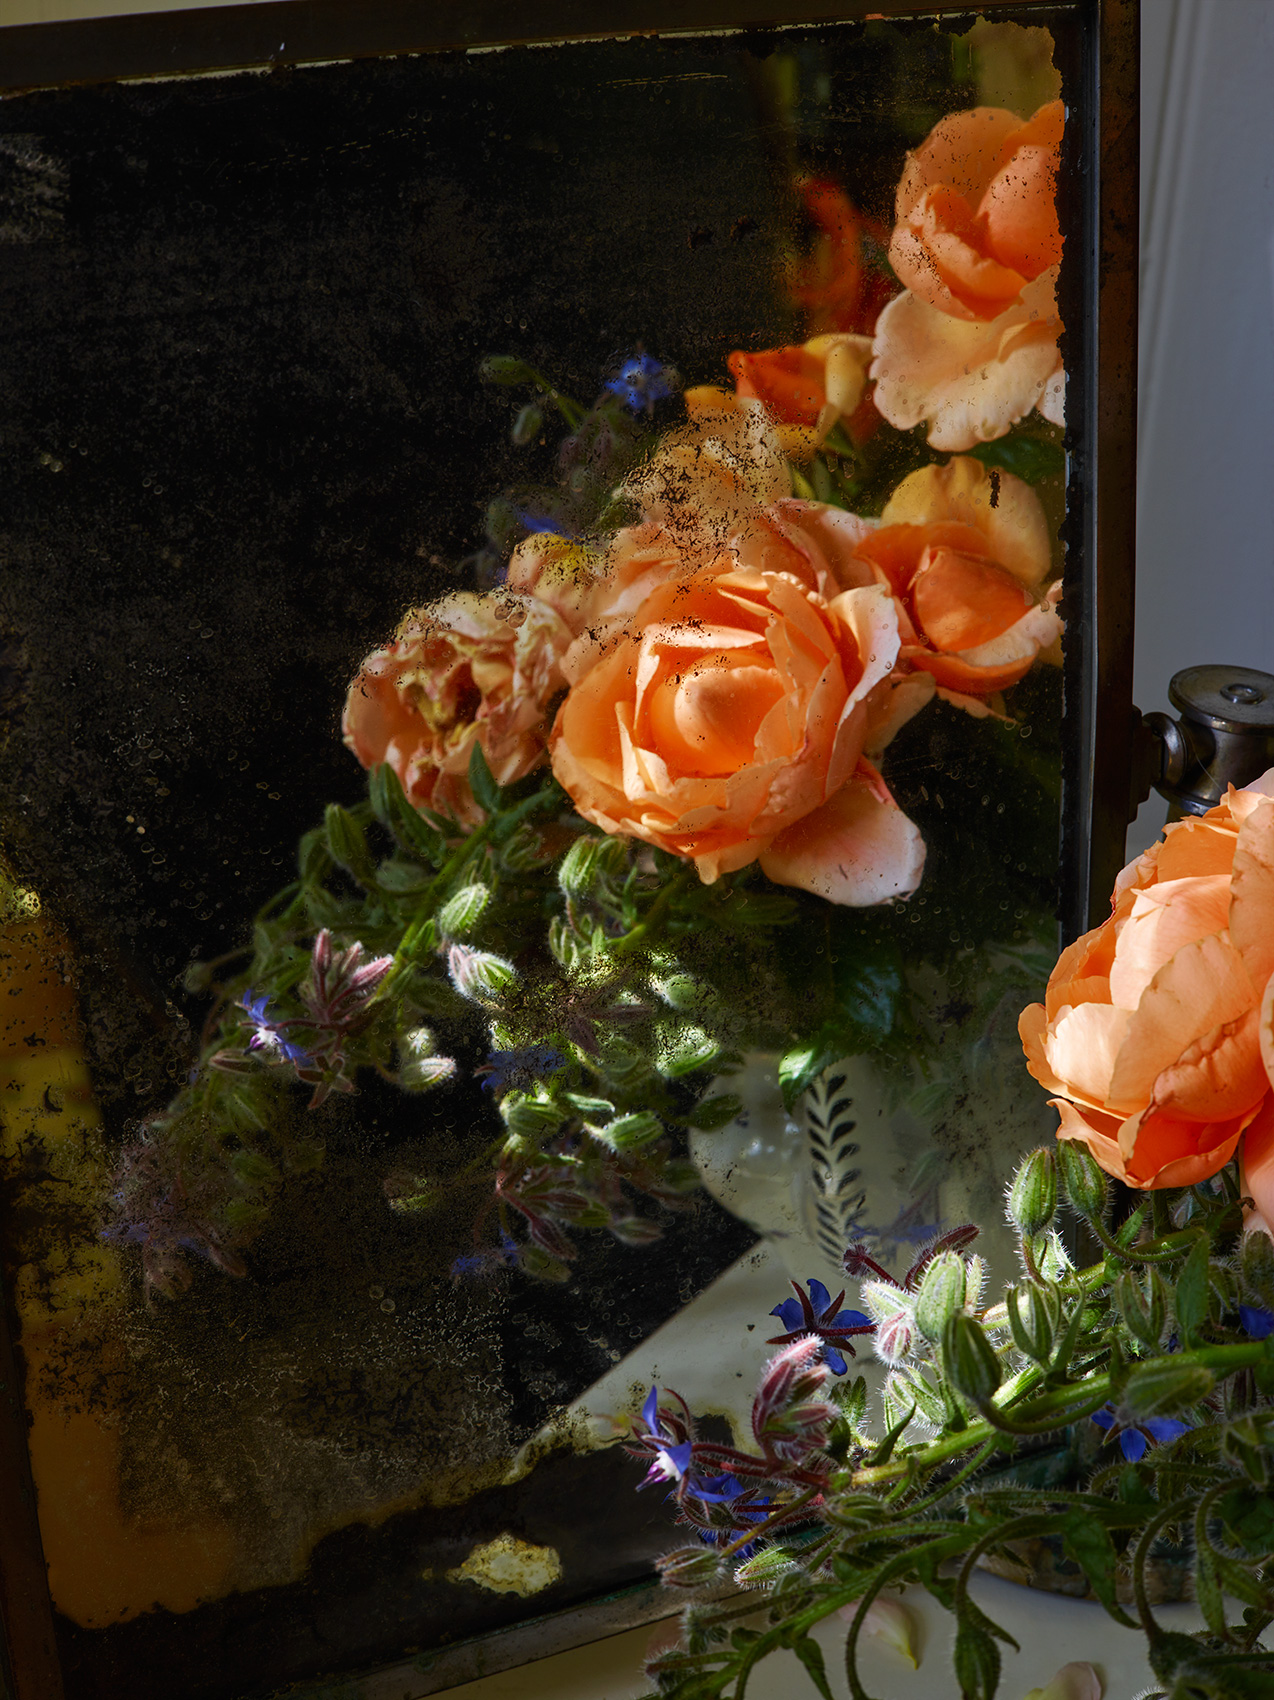 Flowers: Apricot Roses